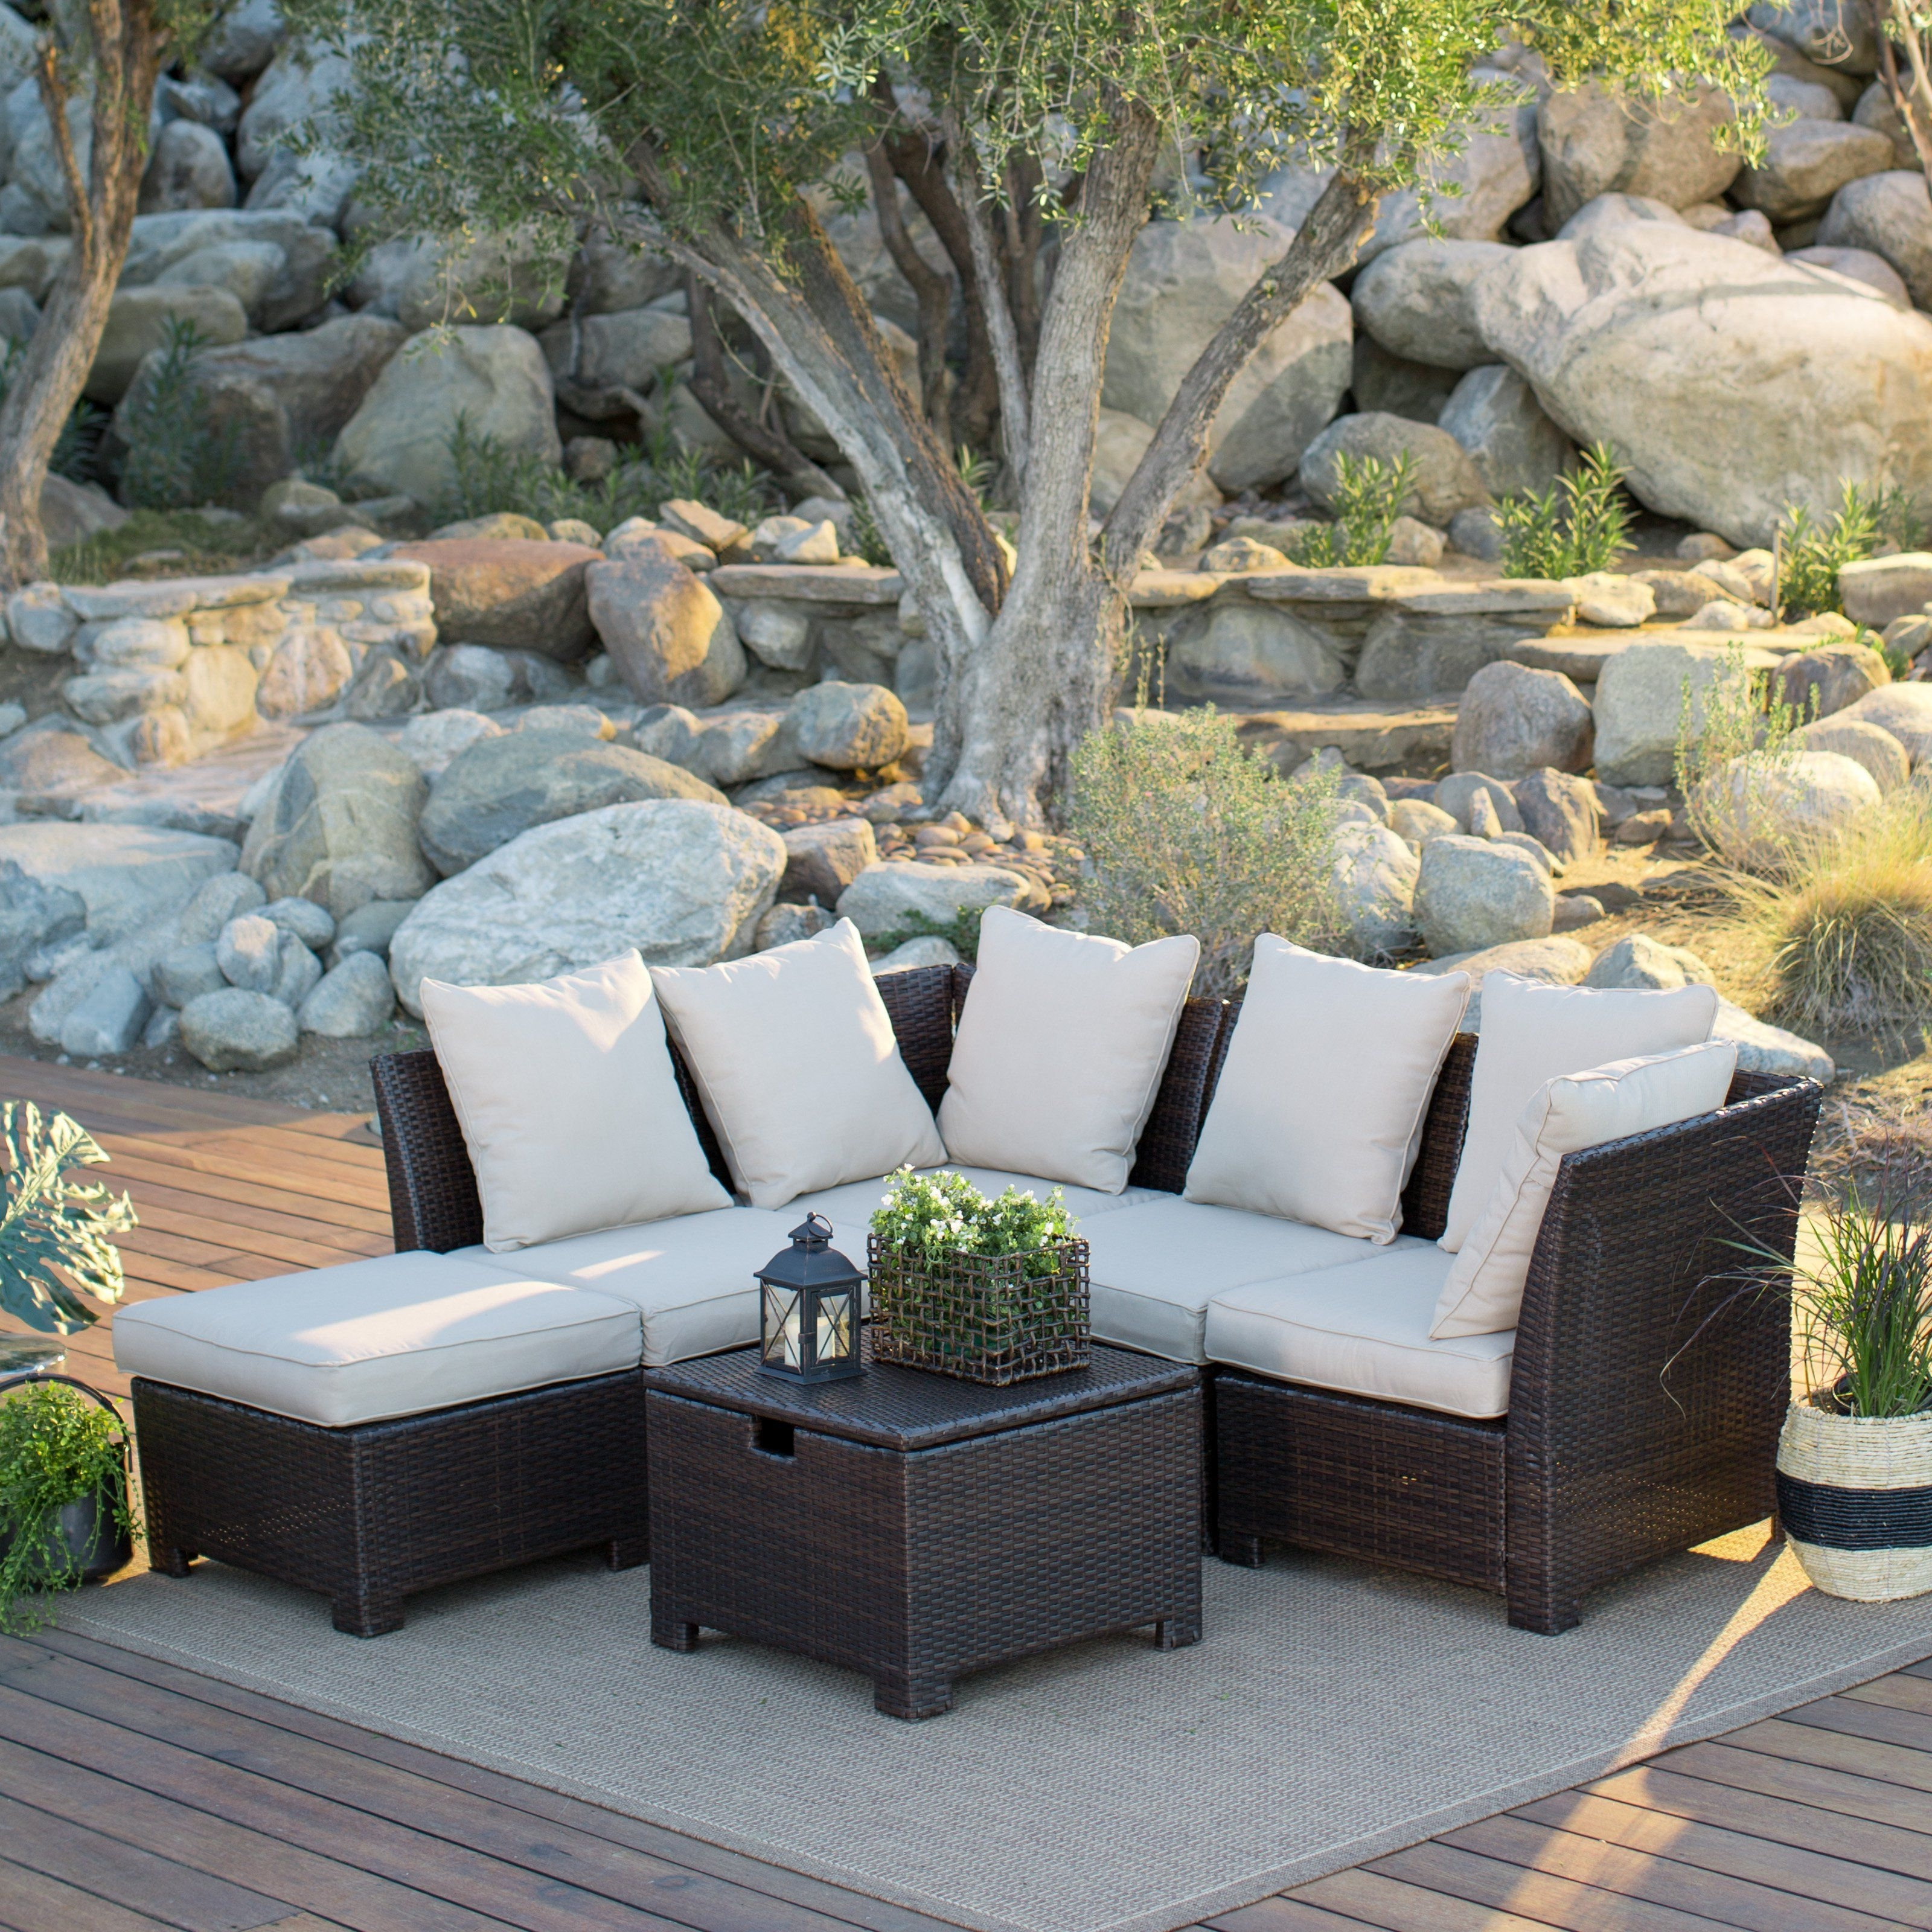 Hayneedle Patio Conversation Sets Intended For 2018 Have To Have It (View 7 of 20)